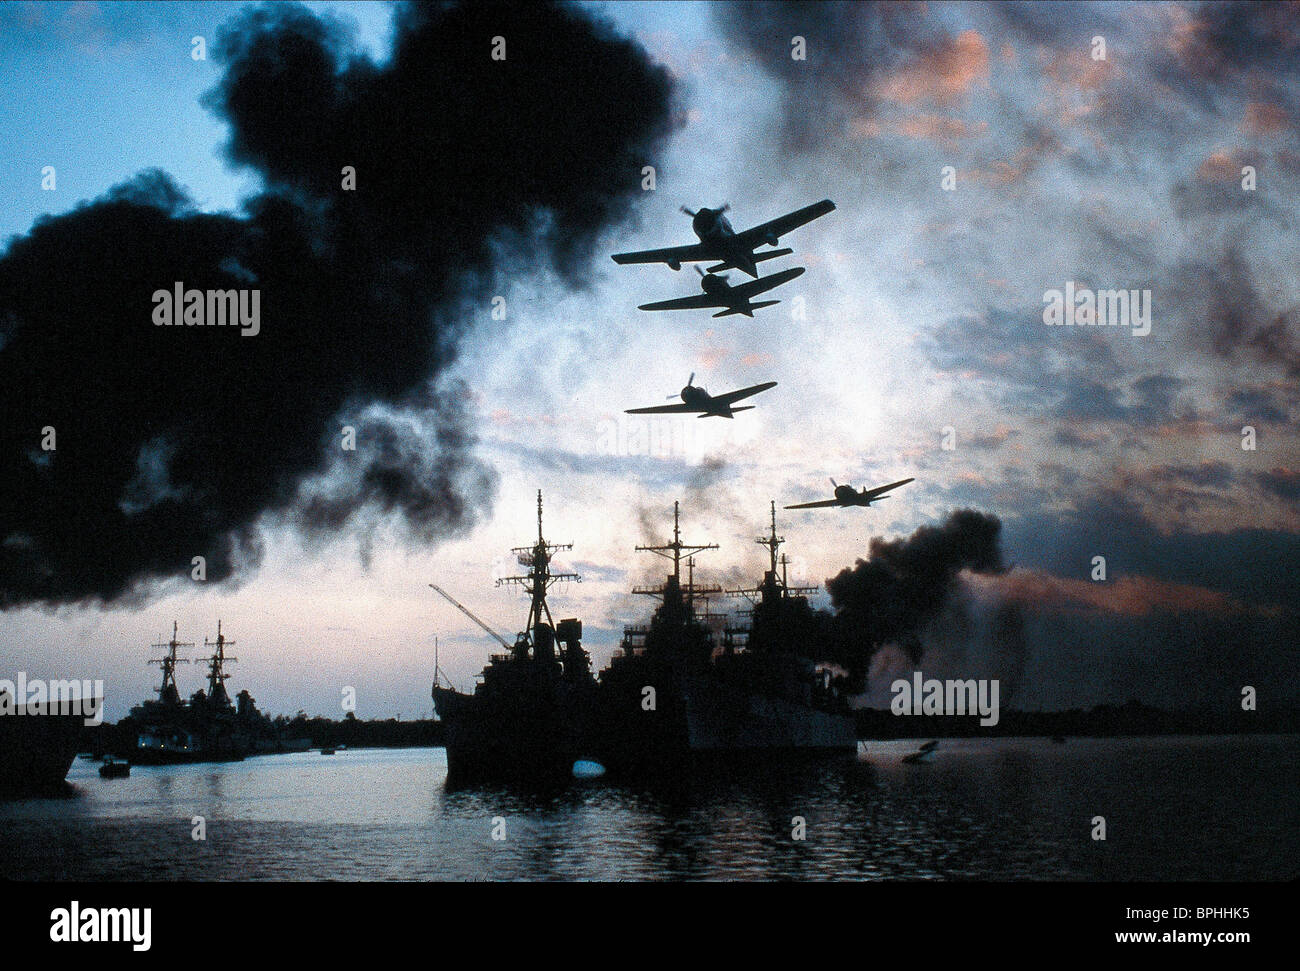 persuasive essay on pearl harbor Pearl harbor brought the us into wwii, which changed the reason of why we would fight in the war, and potentially changed the outcome of world war ii.